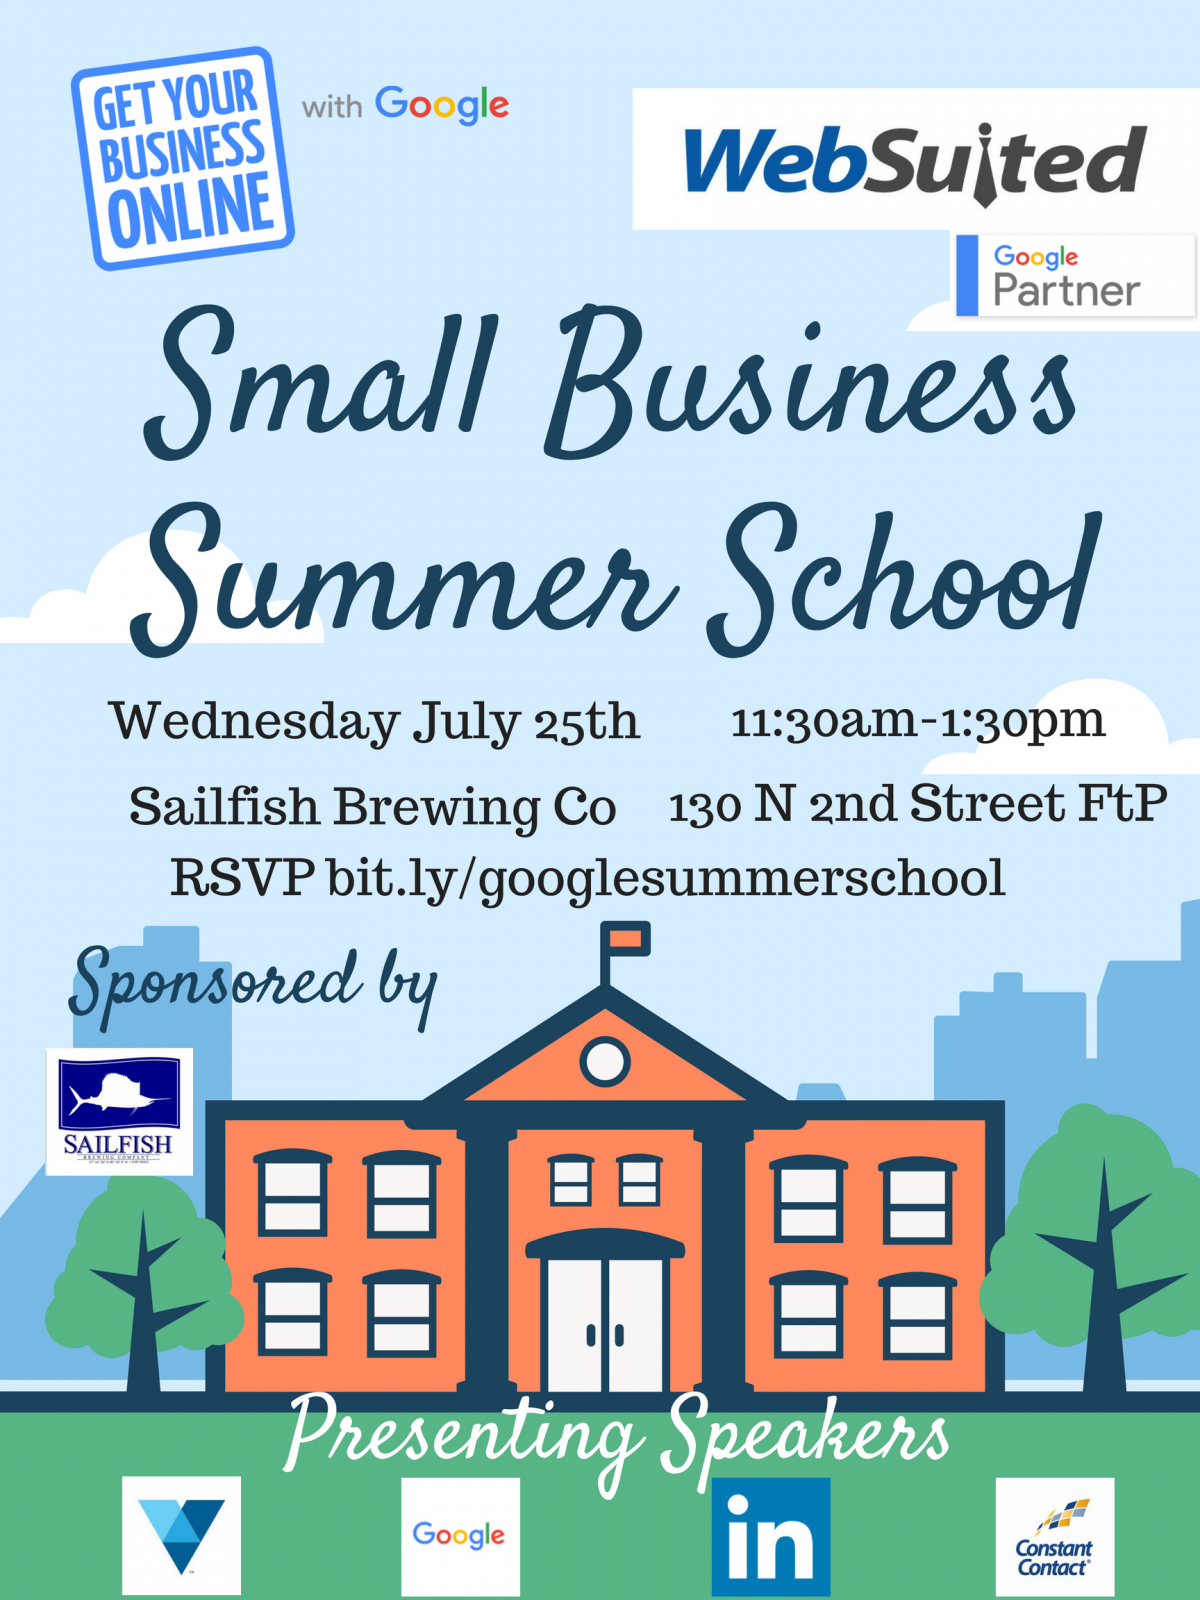 2018 Small Business Summer School - Websuited